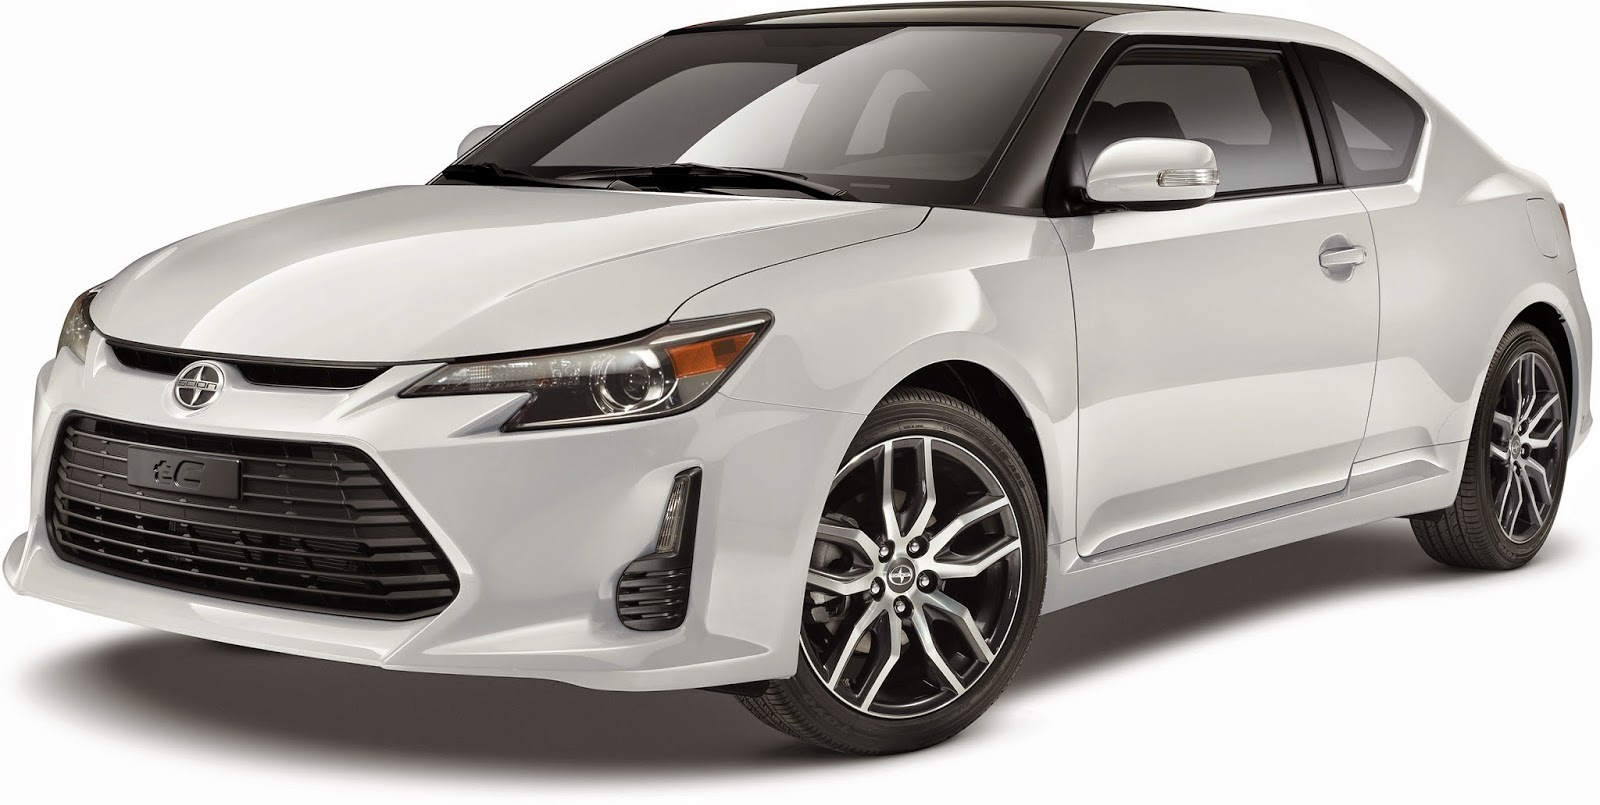 Front 3/4 view of the 2015 Scion tC